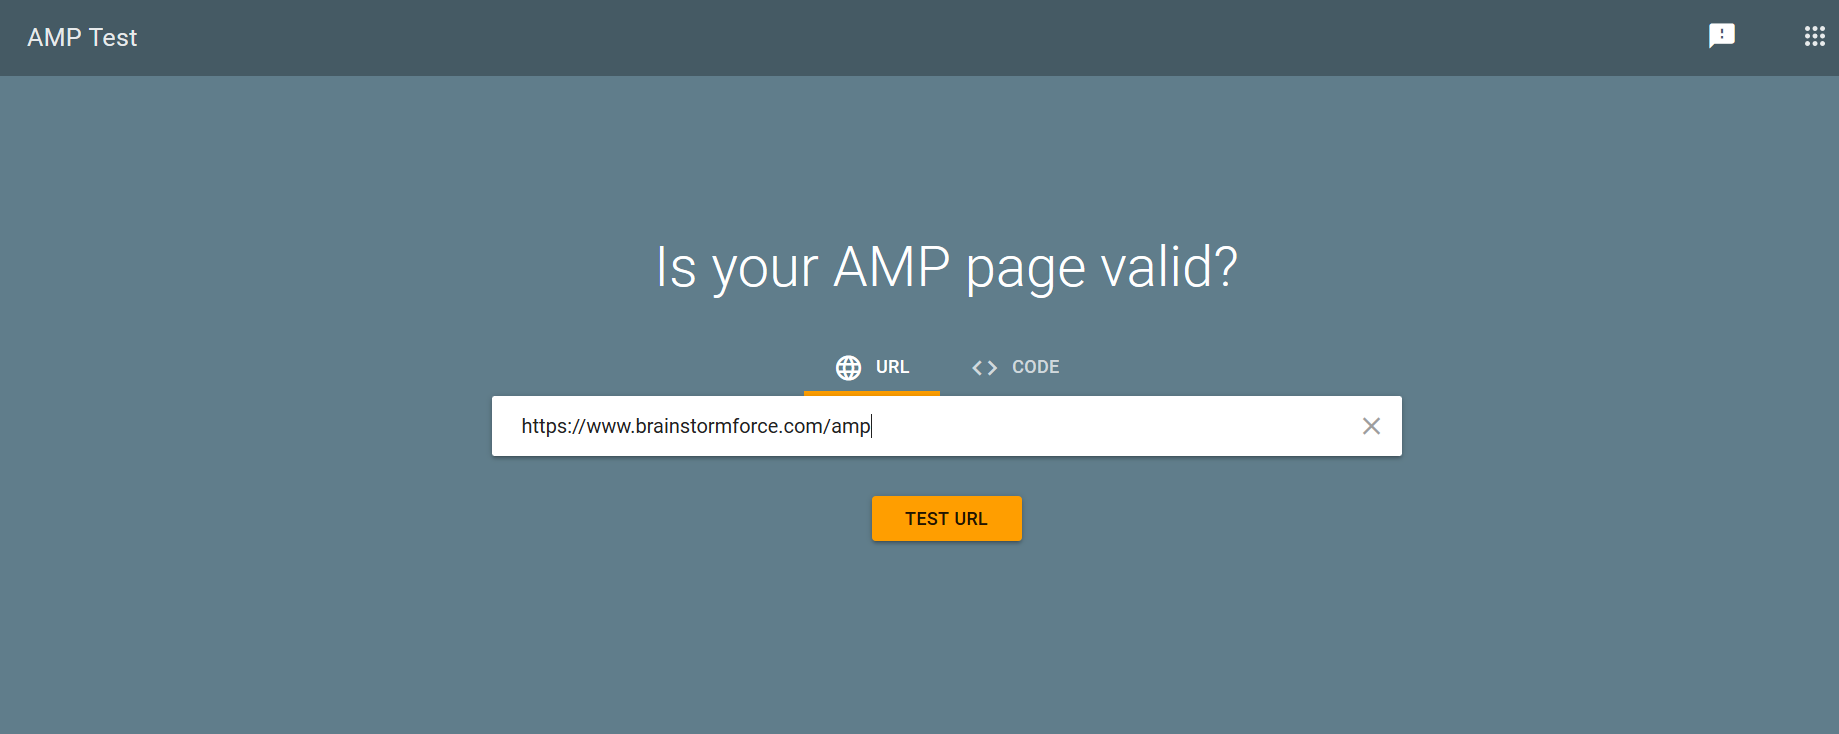 Test for AMP page screenshot